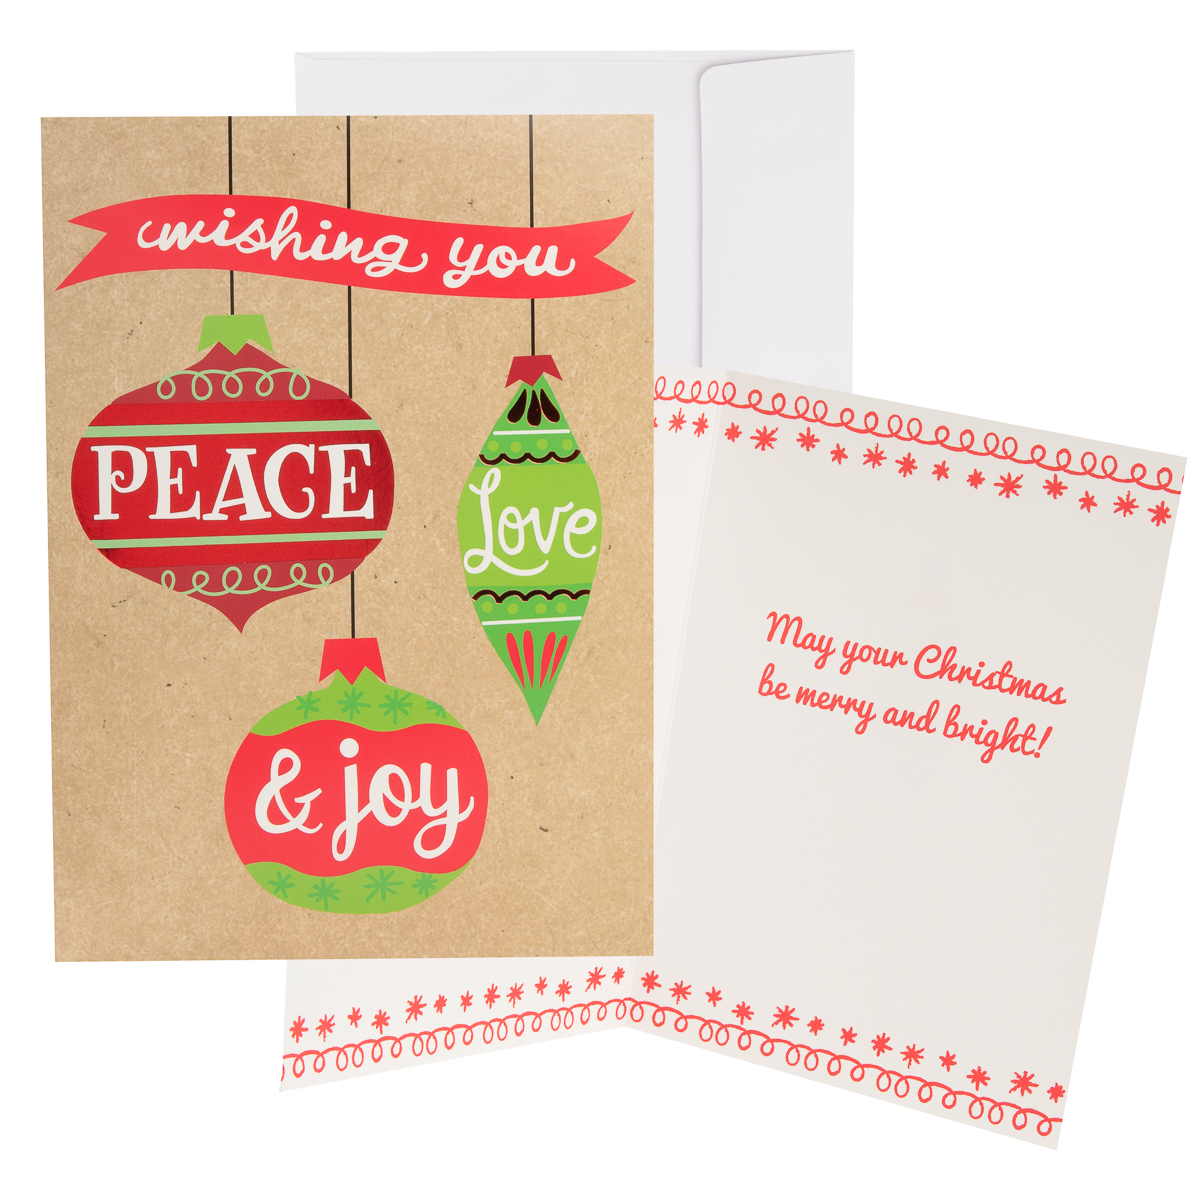 48pk-Merry-Christmas-Cards-Bulk-Assortment-Holiday-Card-Pack-with-Foil-amp-Glitter thumbnail 13